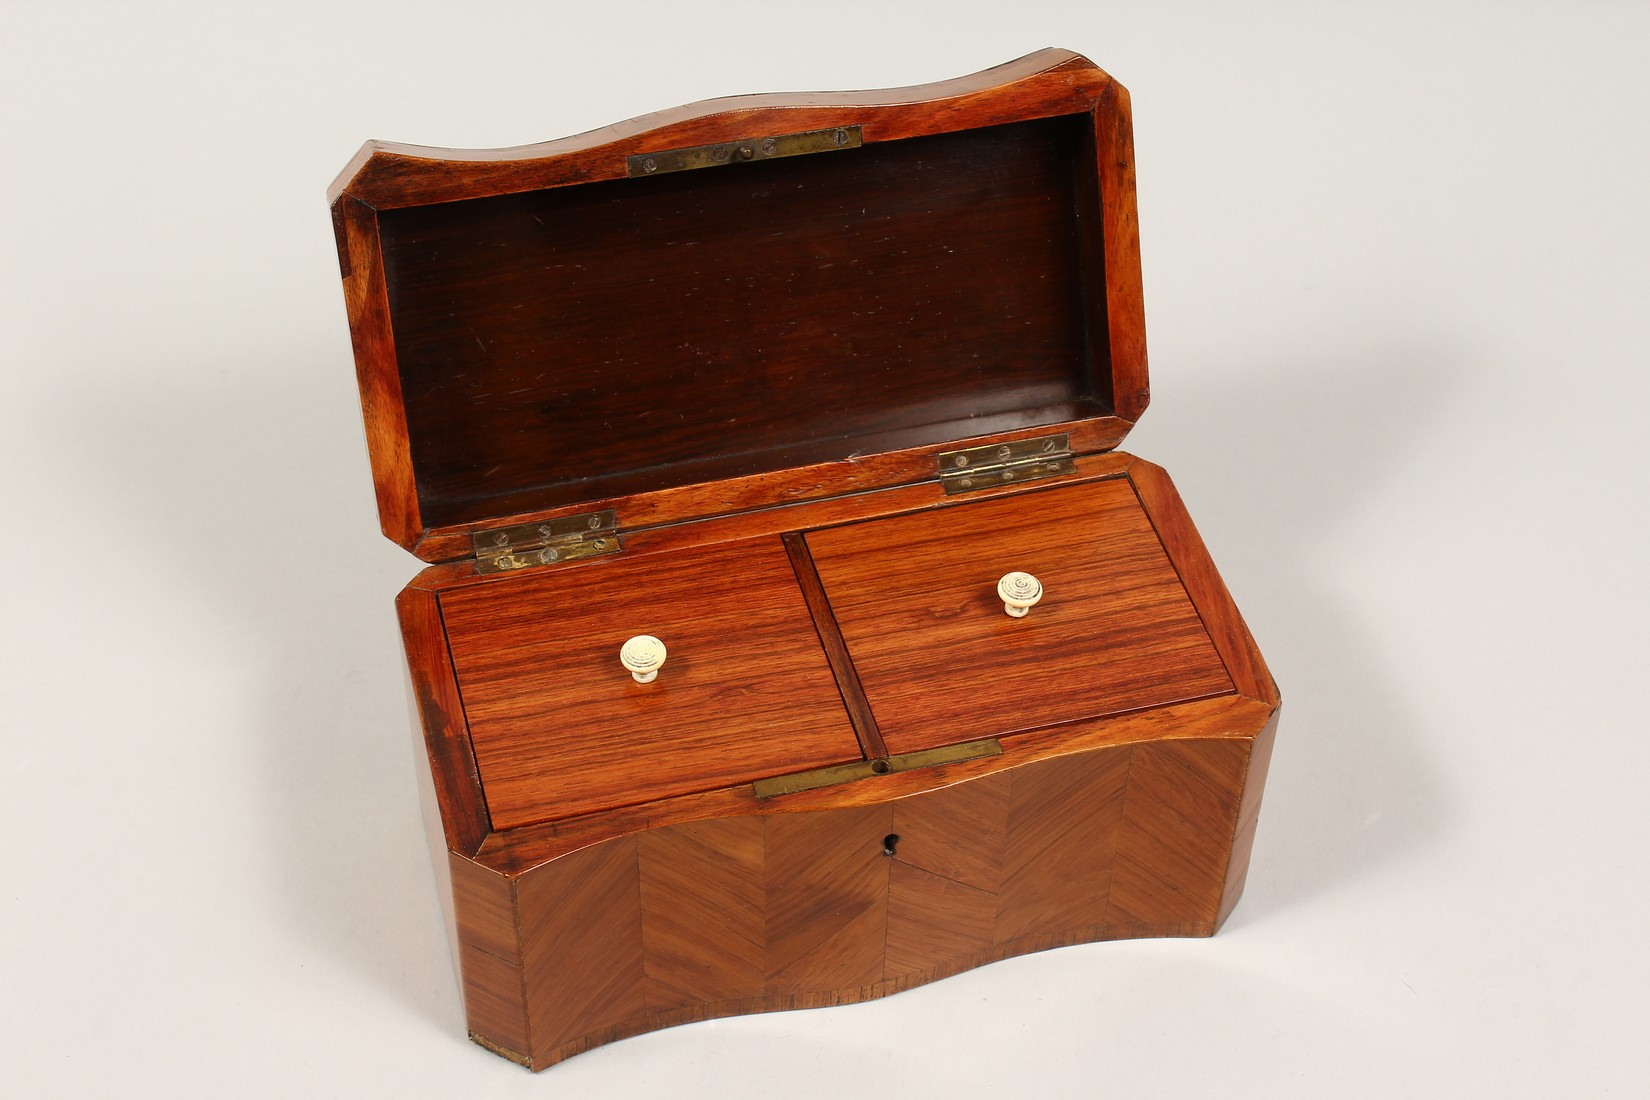 A 19TH CENTURY FRENCH KINGWOOD SERPENTINE-FRONTED TWO DIVISION TEA CADDY with Van Dyck pattern - Image 3 of 6